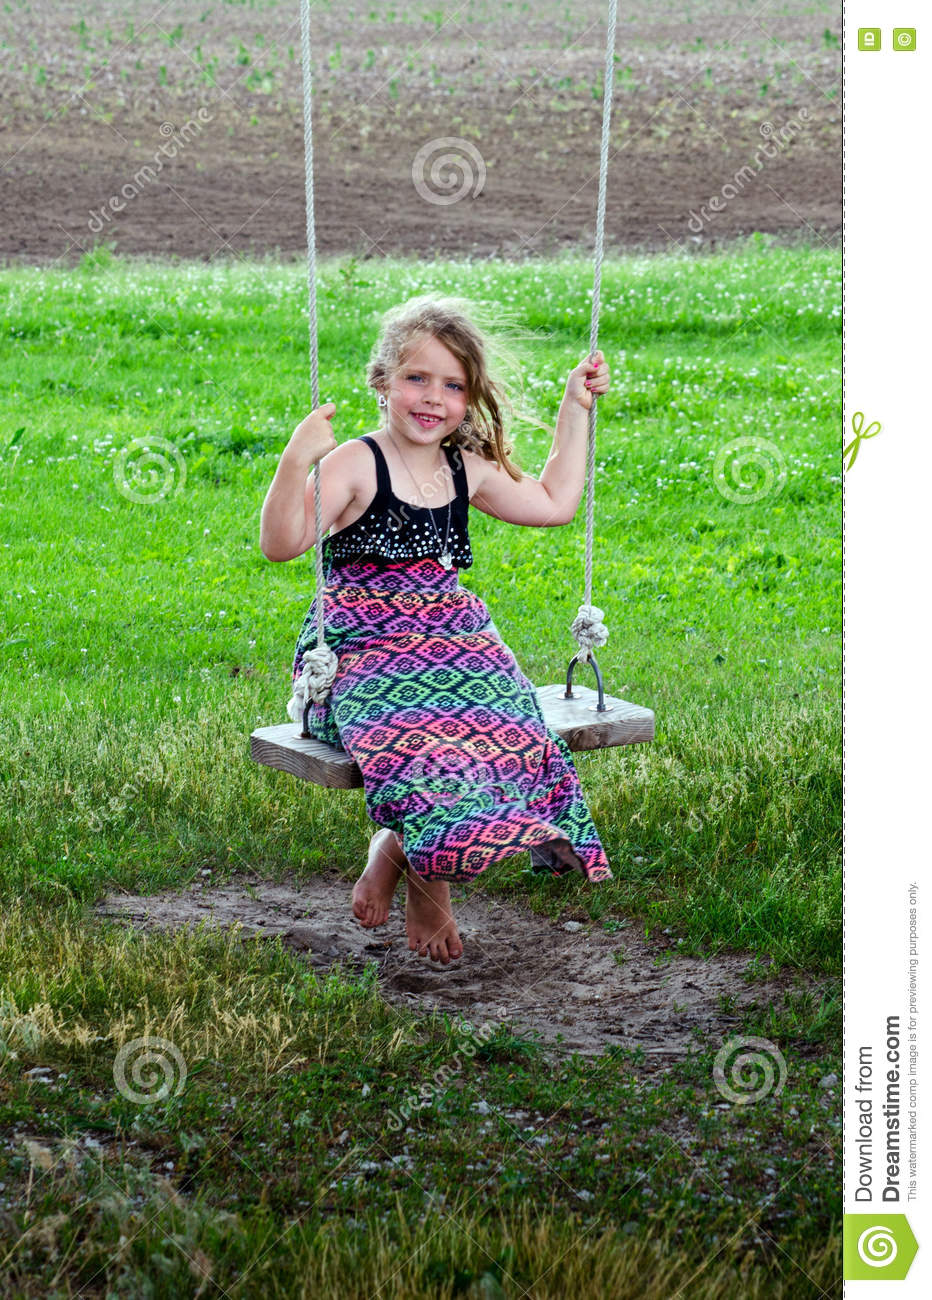 https://thumbs.dreamstime.com/z/barefoot-country-girl-swing-cute-little-sits-summers-day-73788021.jpg